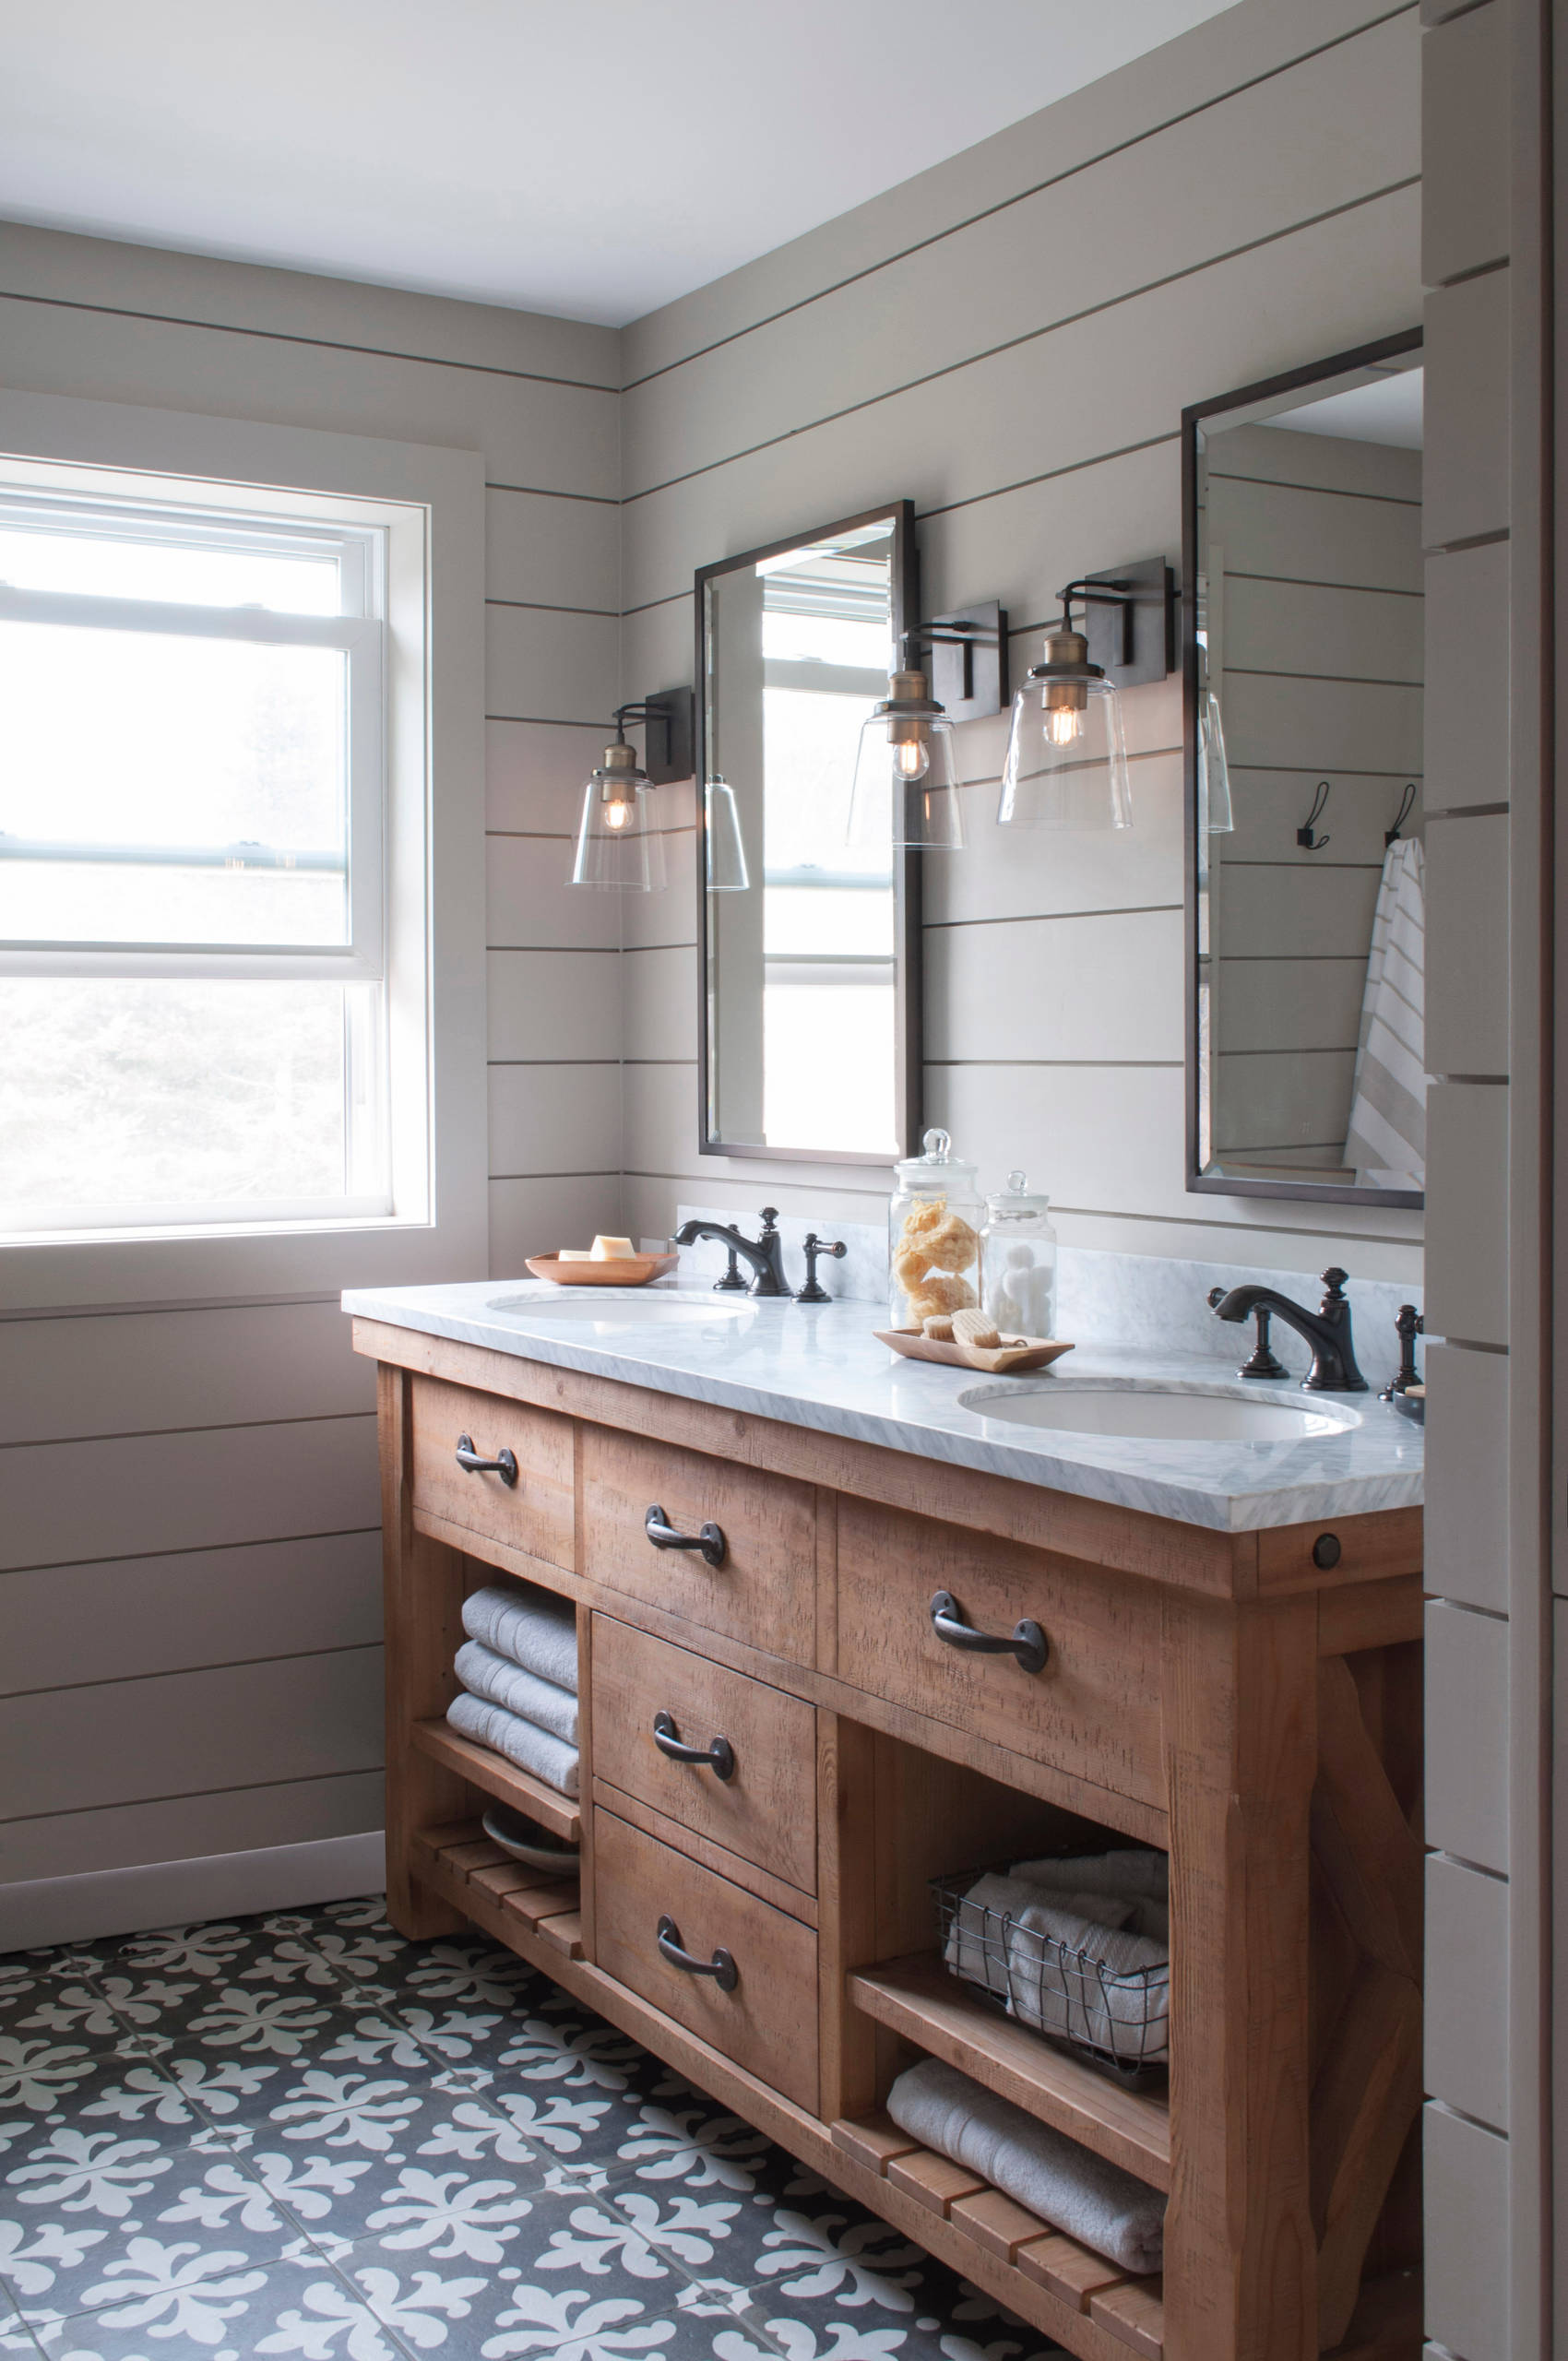 75 Beautiful Farmhouse Bathroom Pictures Ideas February 2021 Houzz